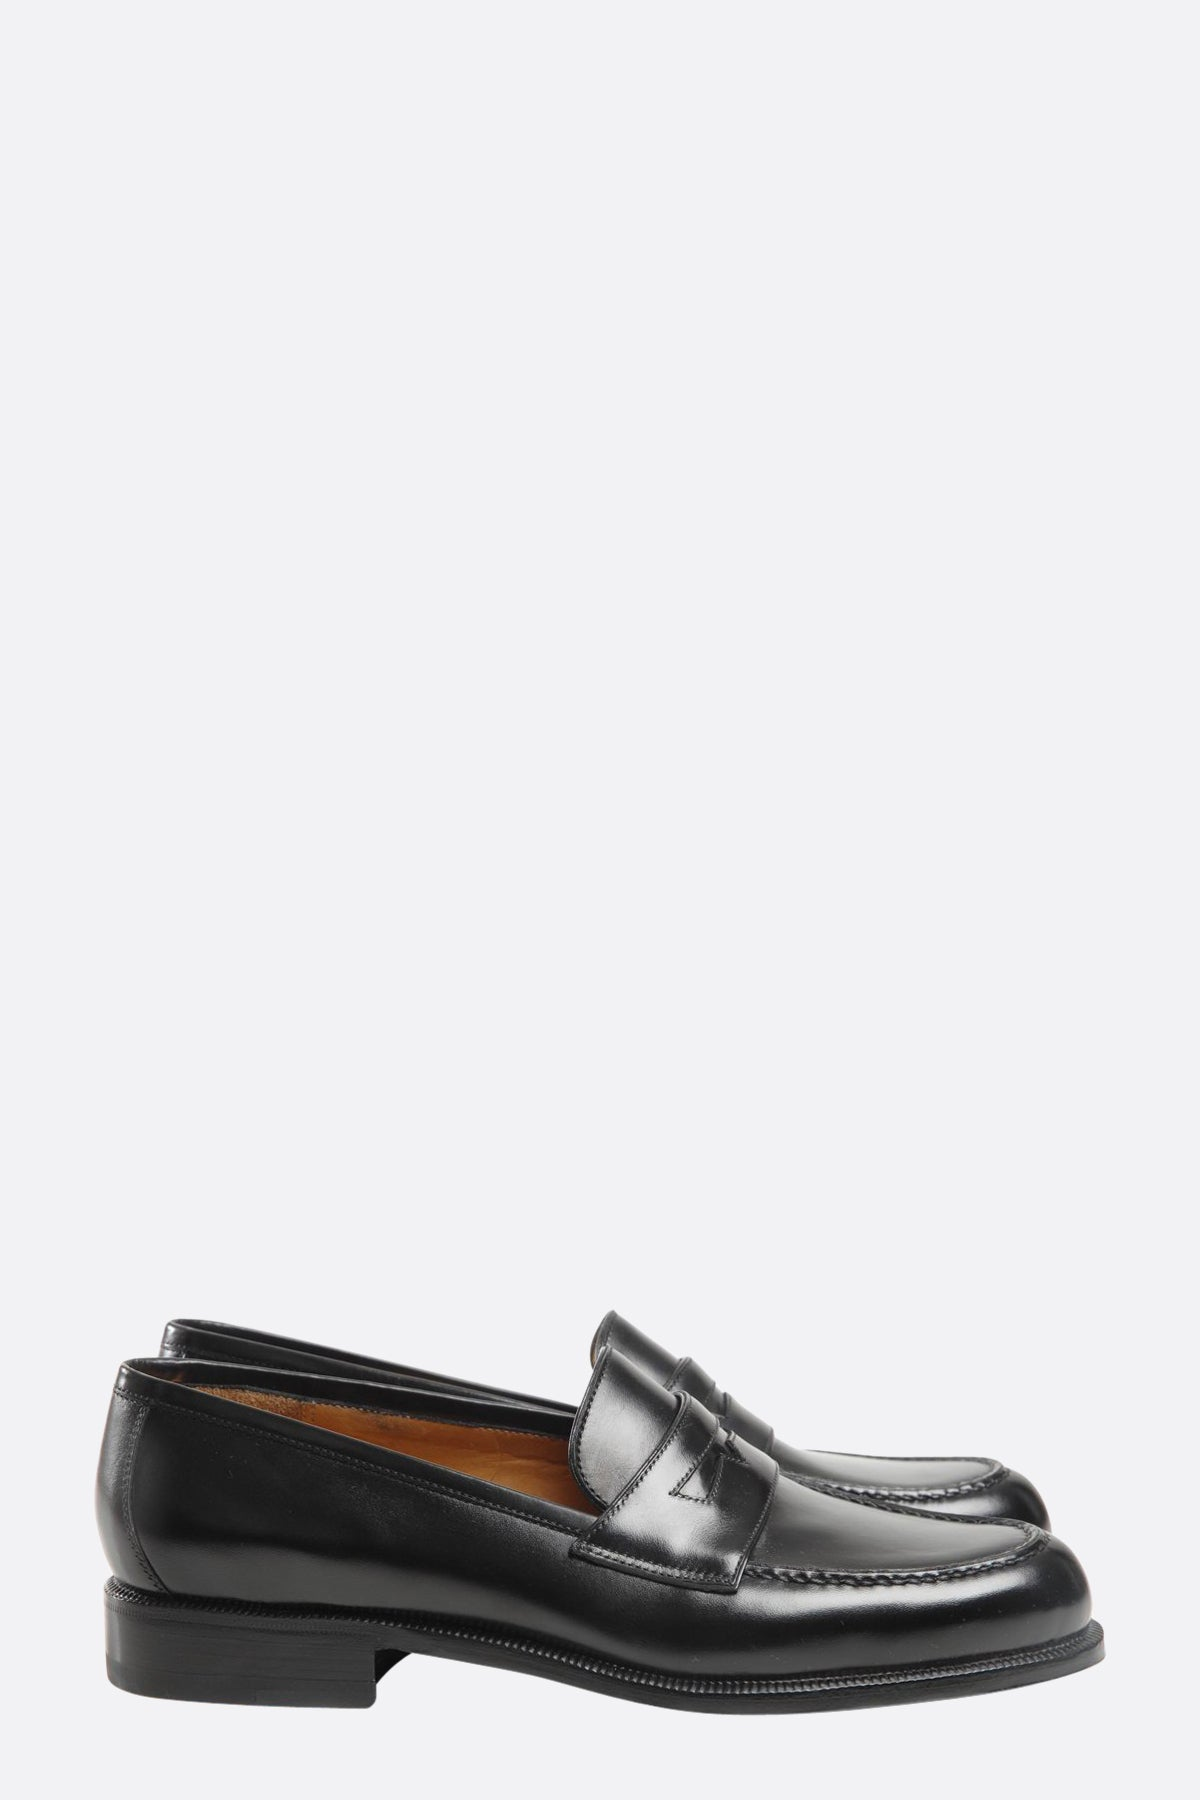 black ball loafer